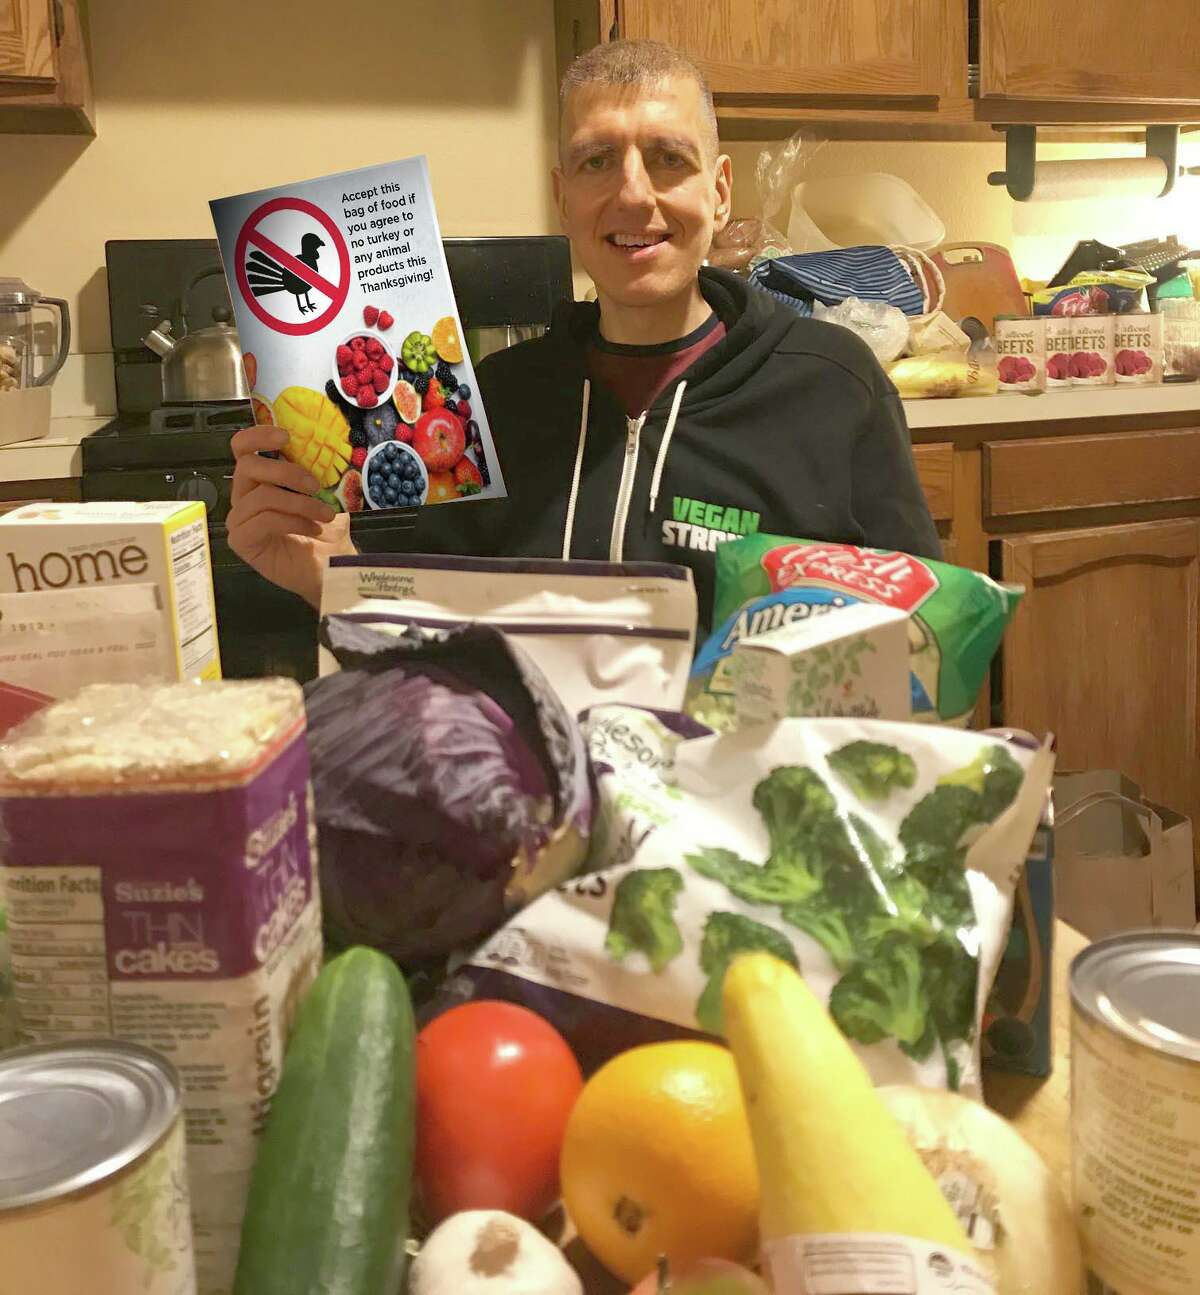 Richard Hubbard of Torrington, a practicing vegan, donated plant-based meals to those in need this Thanksgiving season.